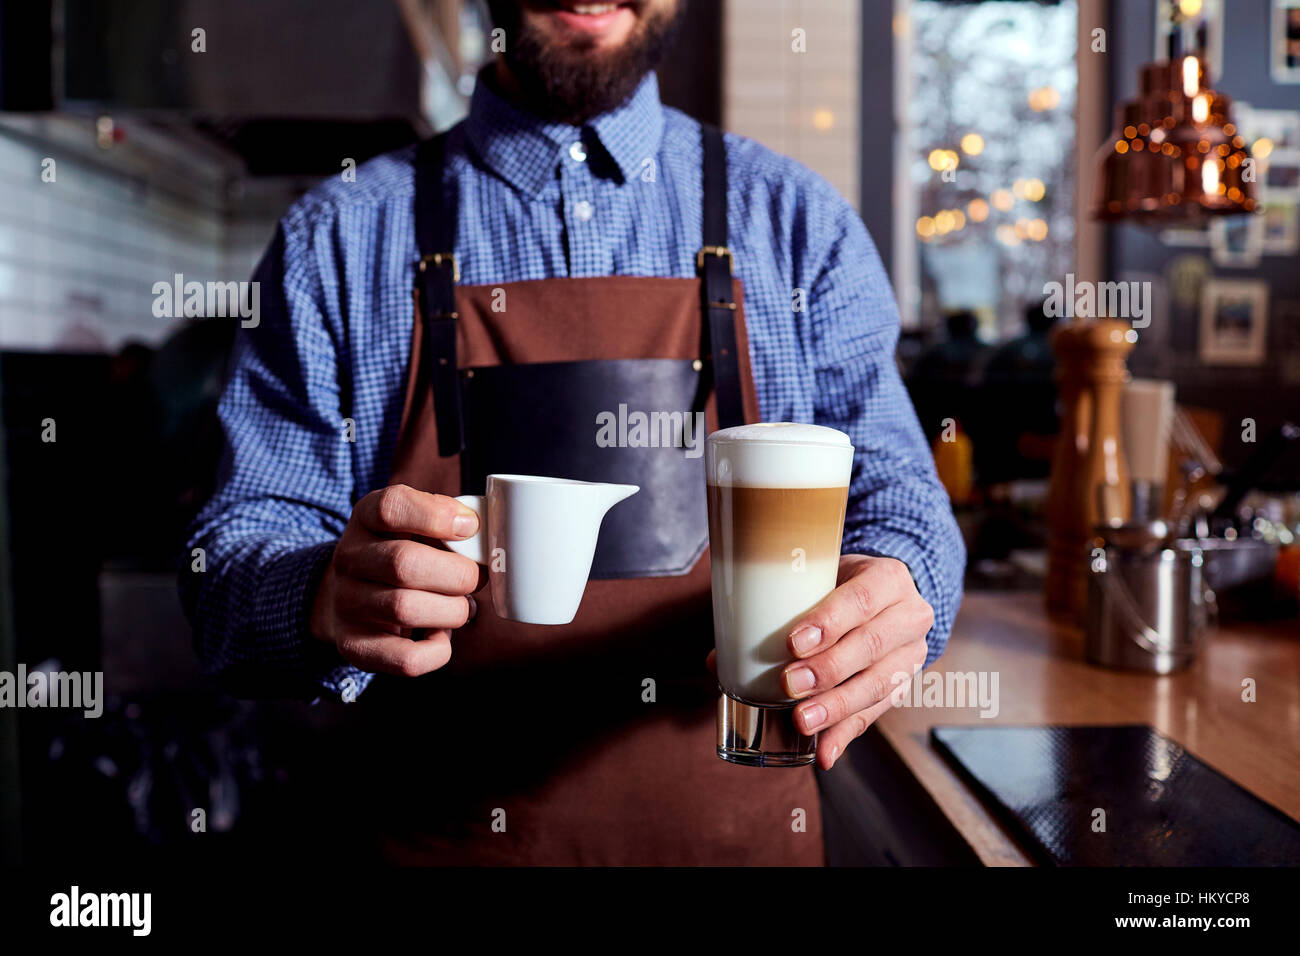 Barista bartender with a cappuccino in hand - Stock Image